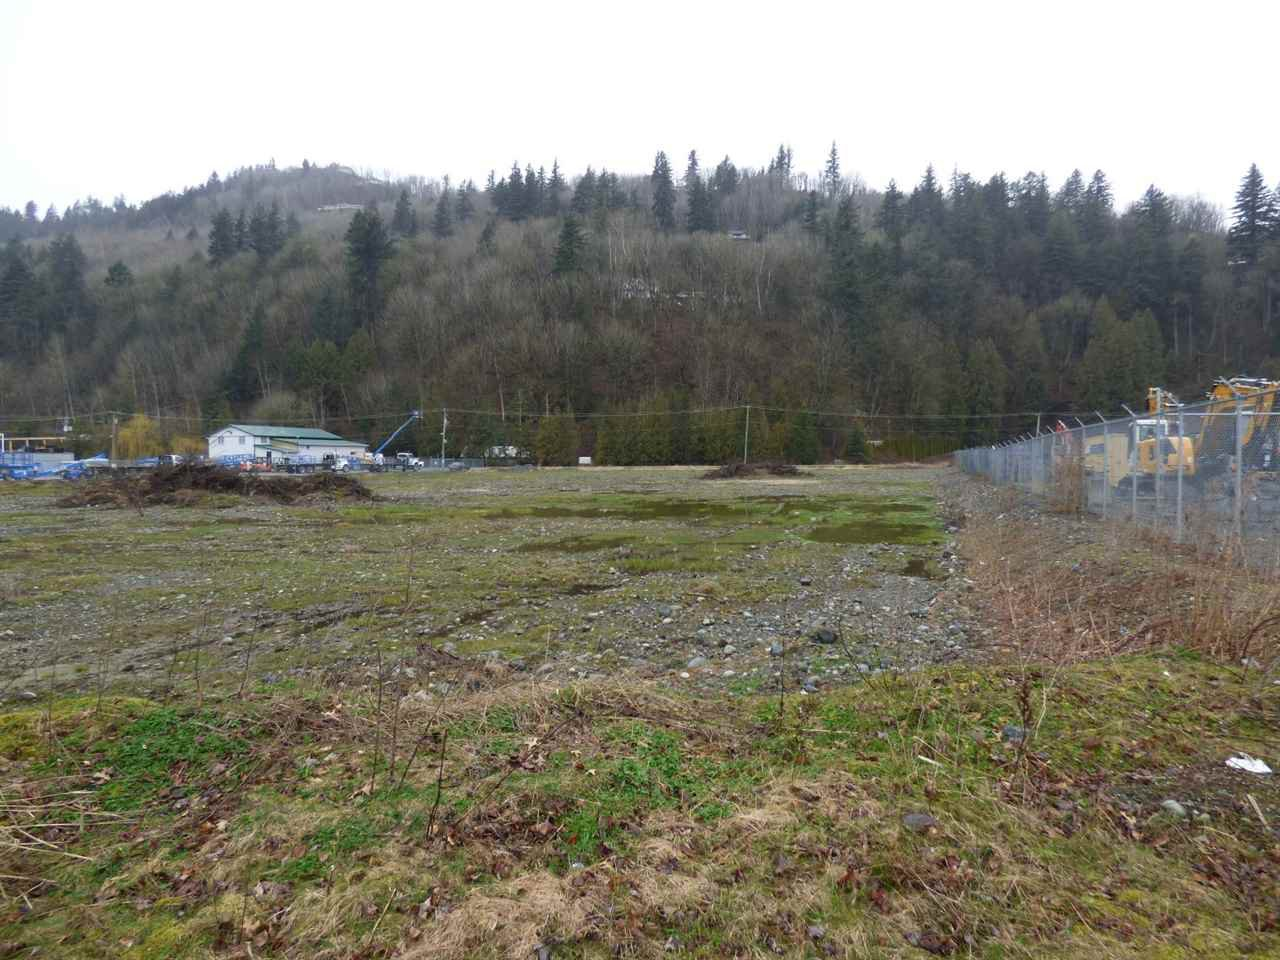 Main Photo: 44097 PROGRESS Way in Chilliwack: Chilliwack Yale Rd West Land Commercial for sale : MLS®# C8031255